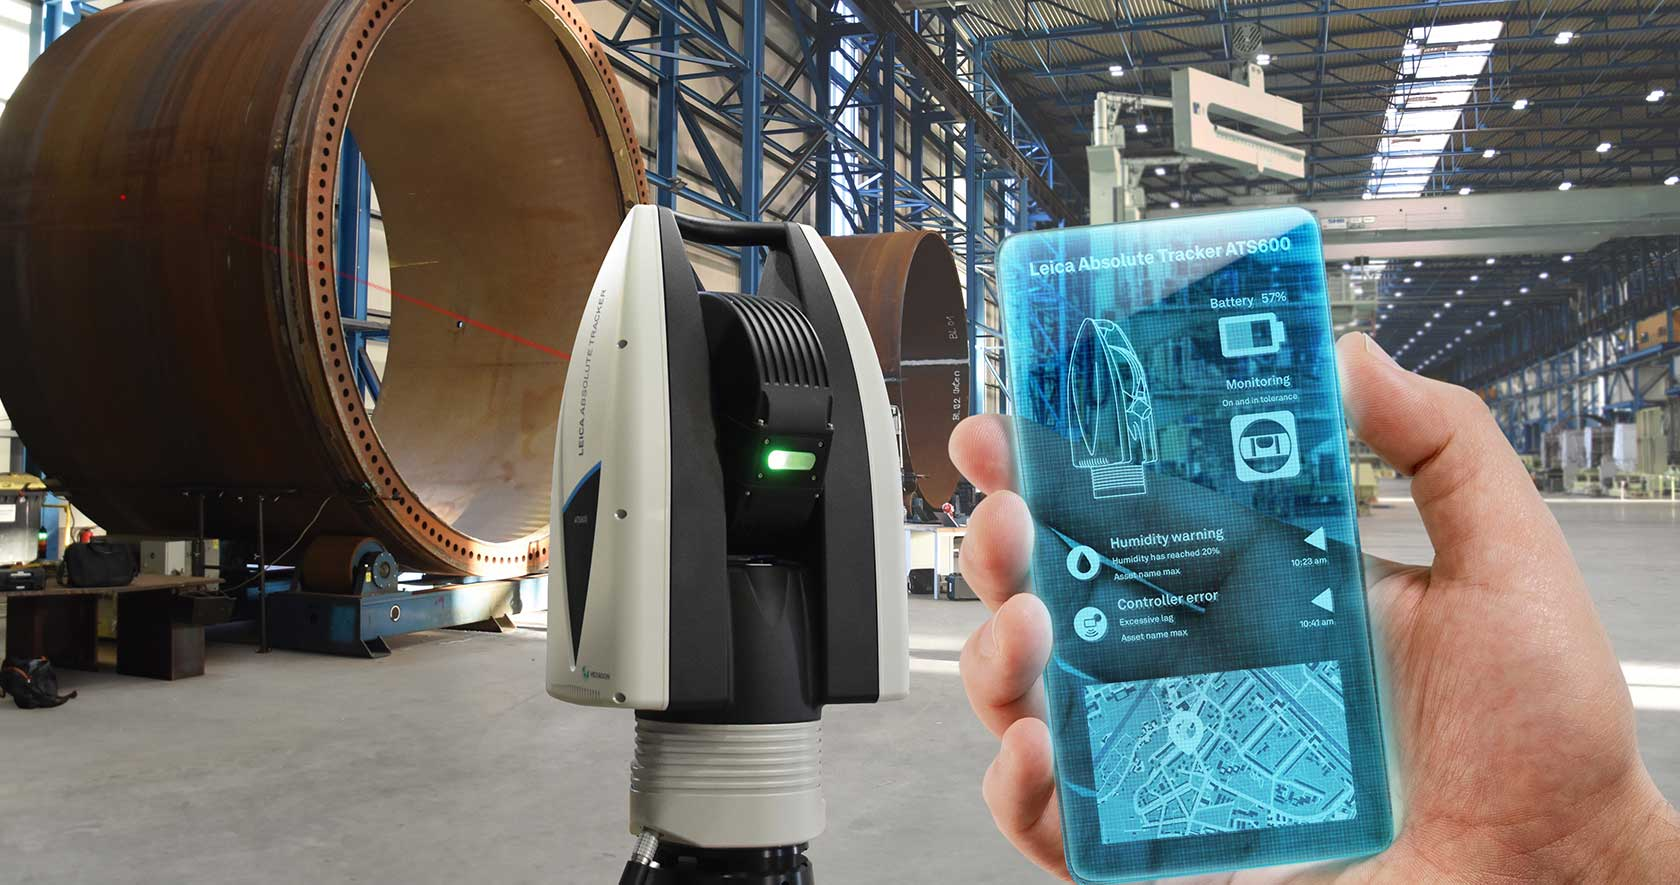 Laser Tracker Systems Hexagon Manufacturing Intelligence